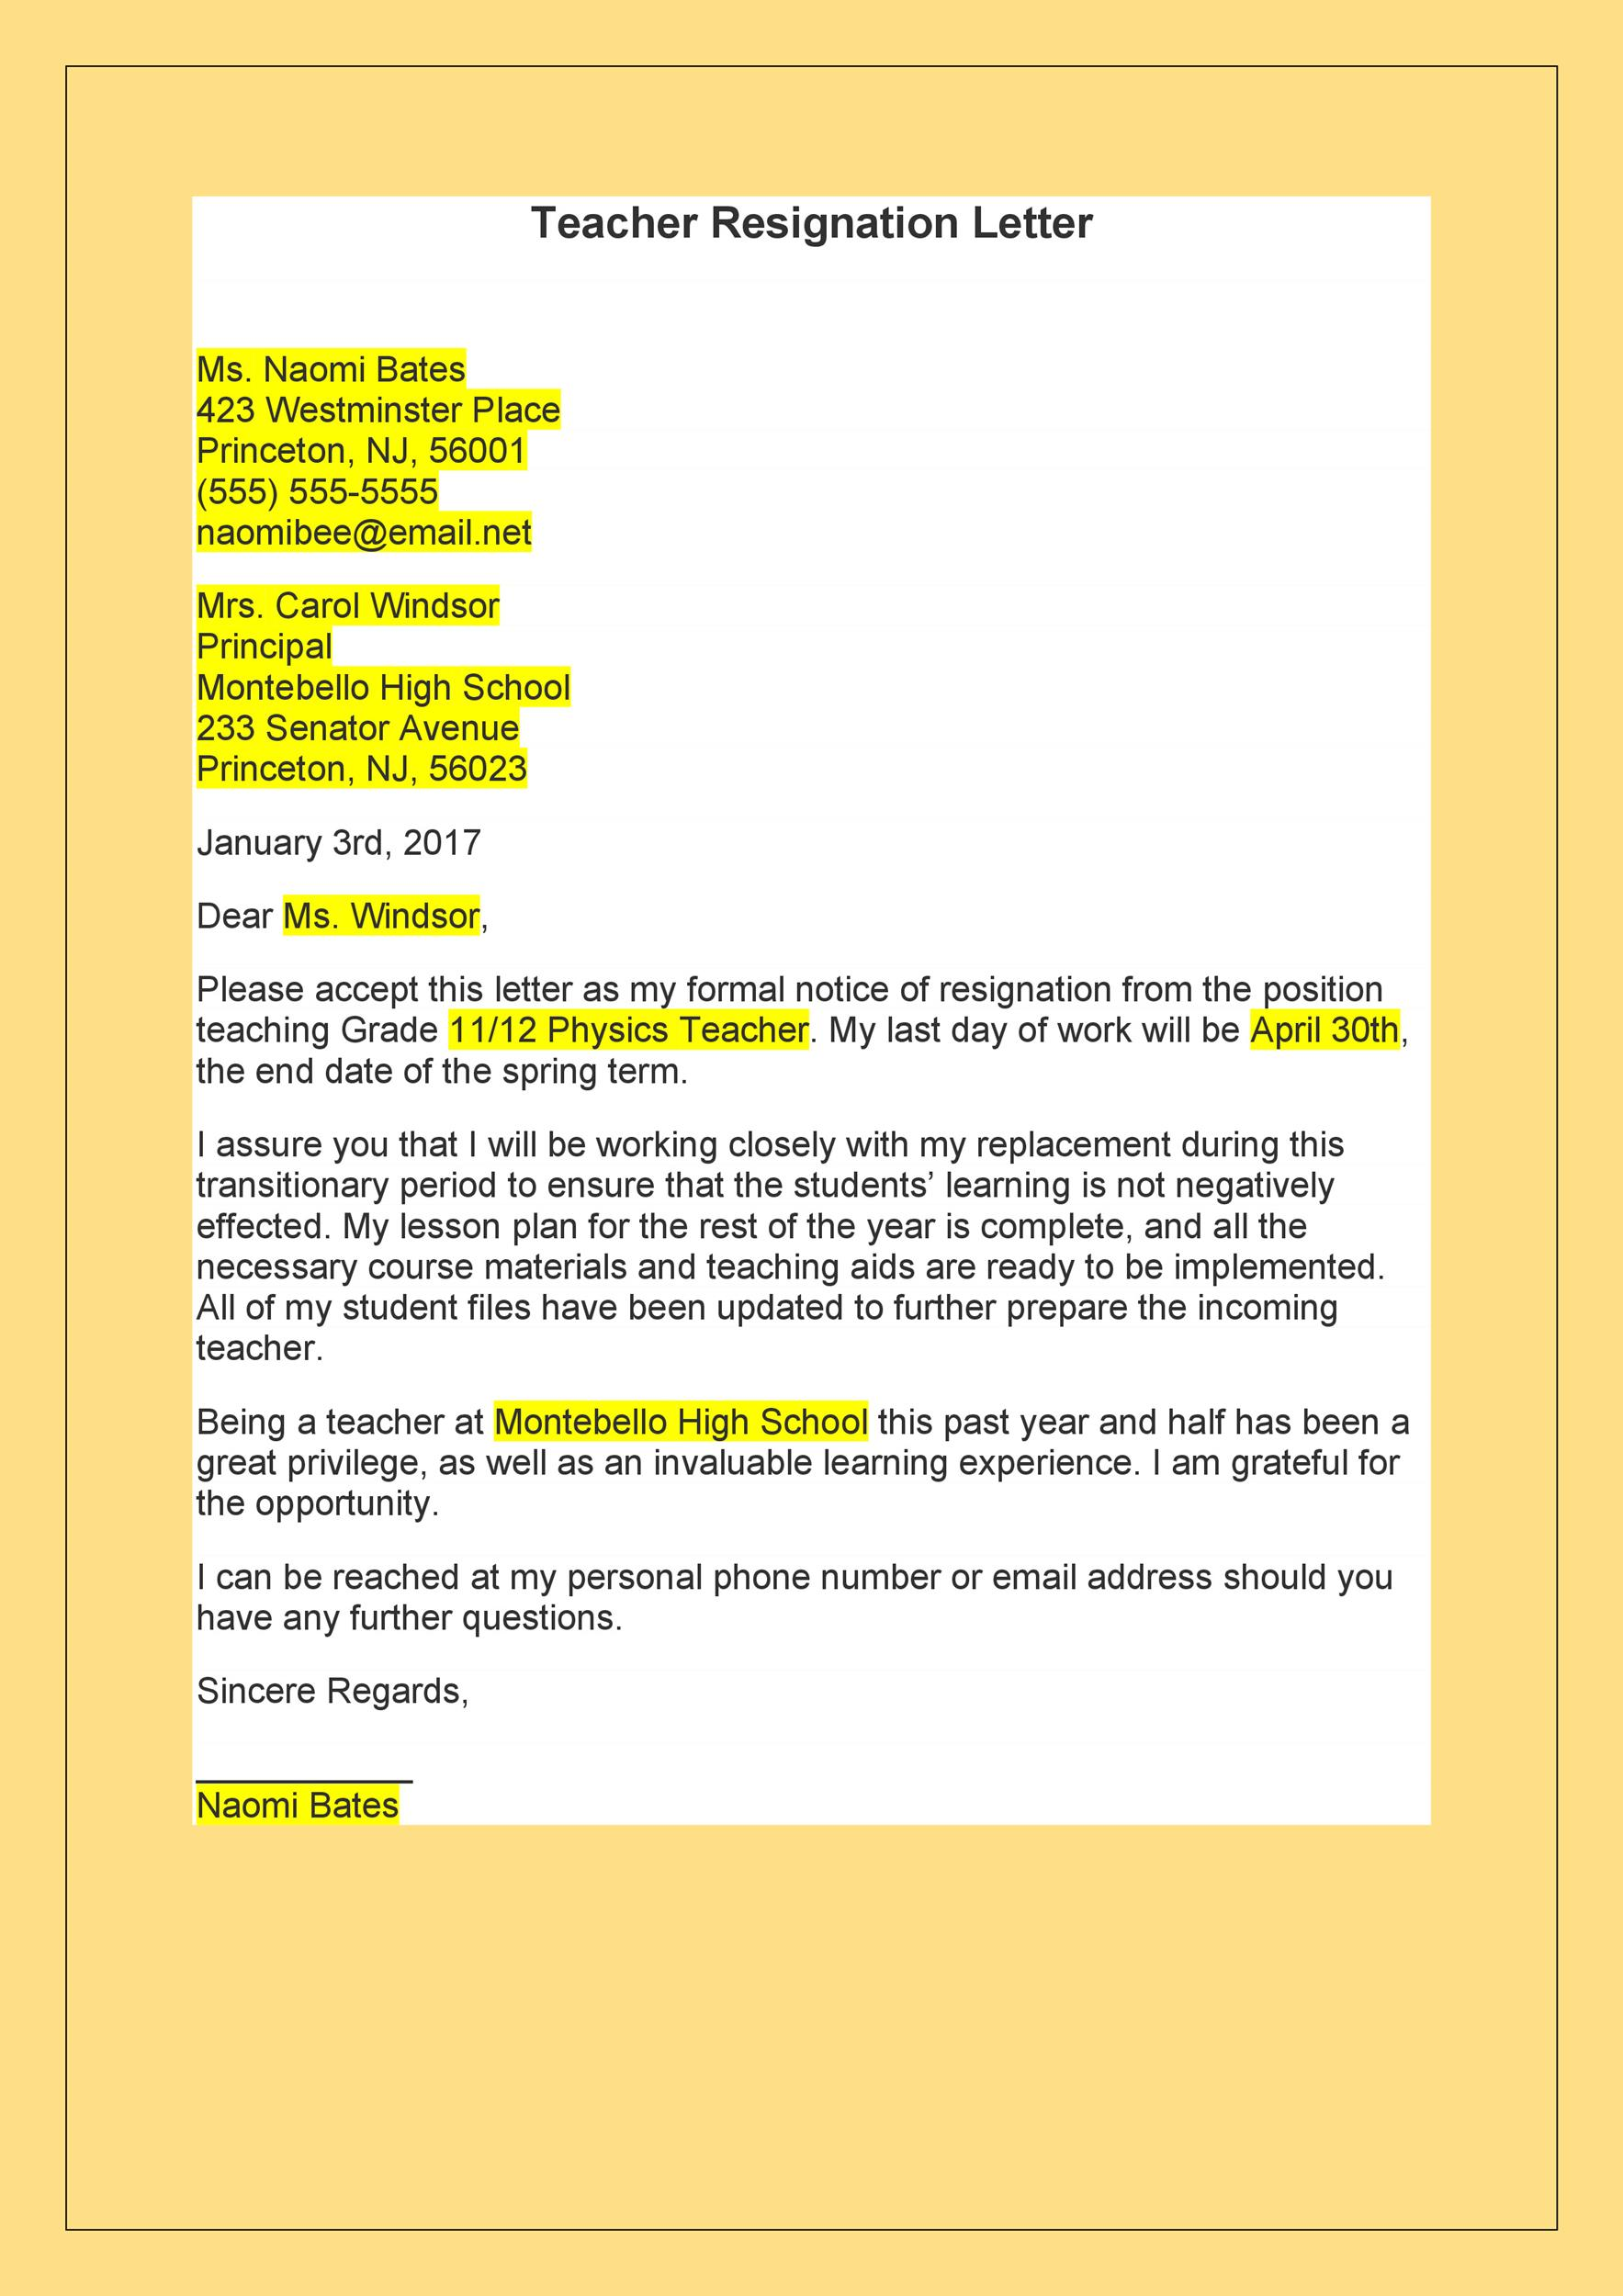 Free teacher resignation letter 02